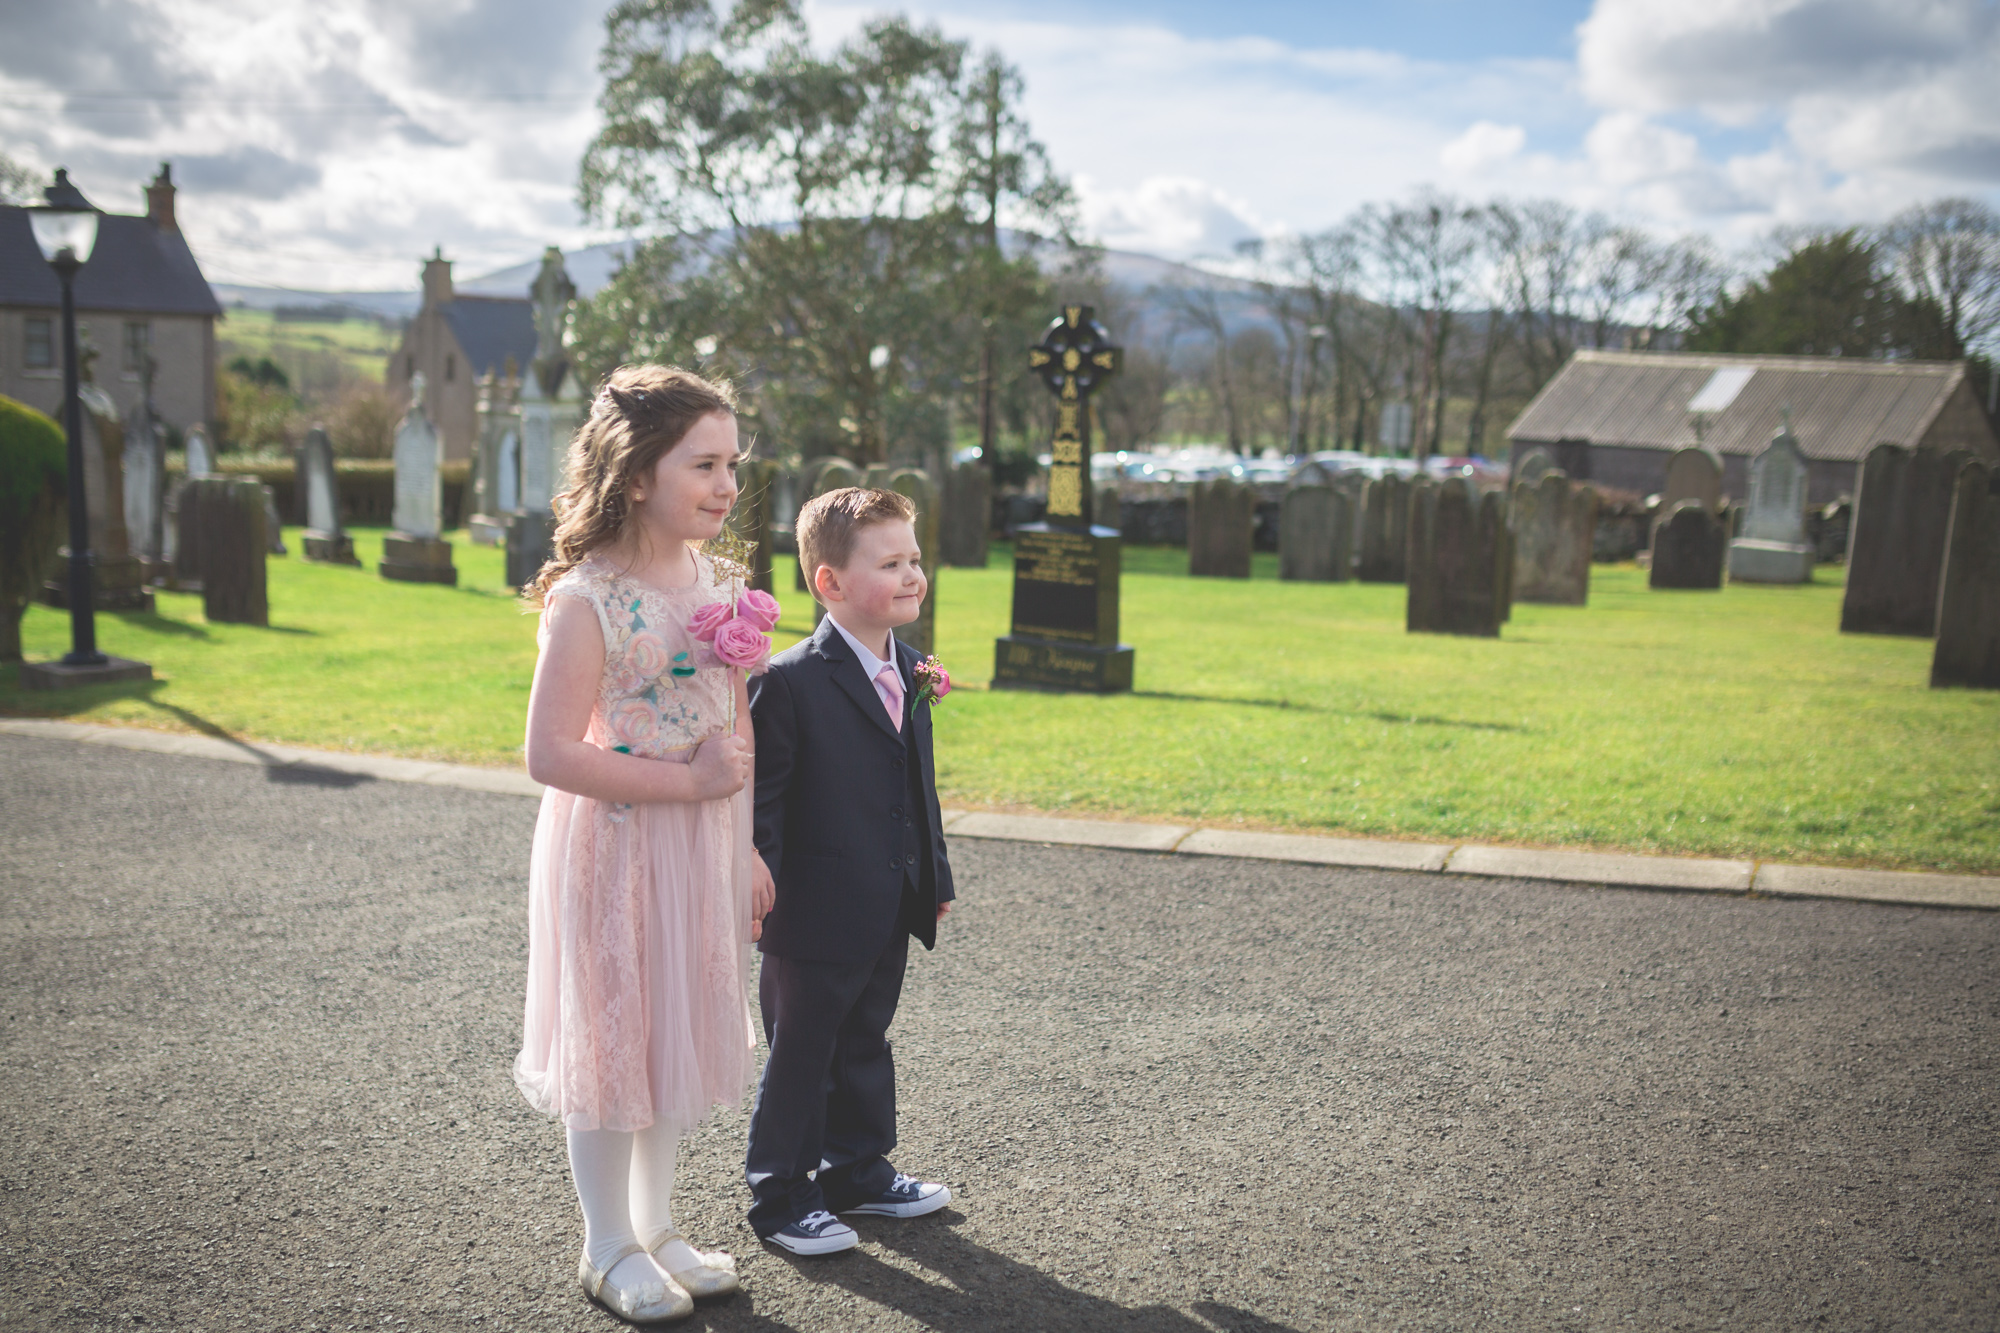 Francis&Oonagh-Ceremony-24.jpg